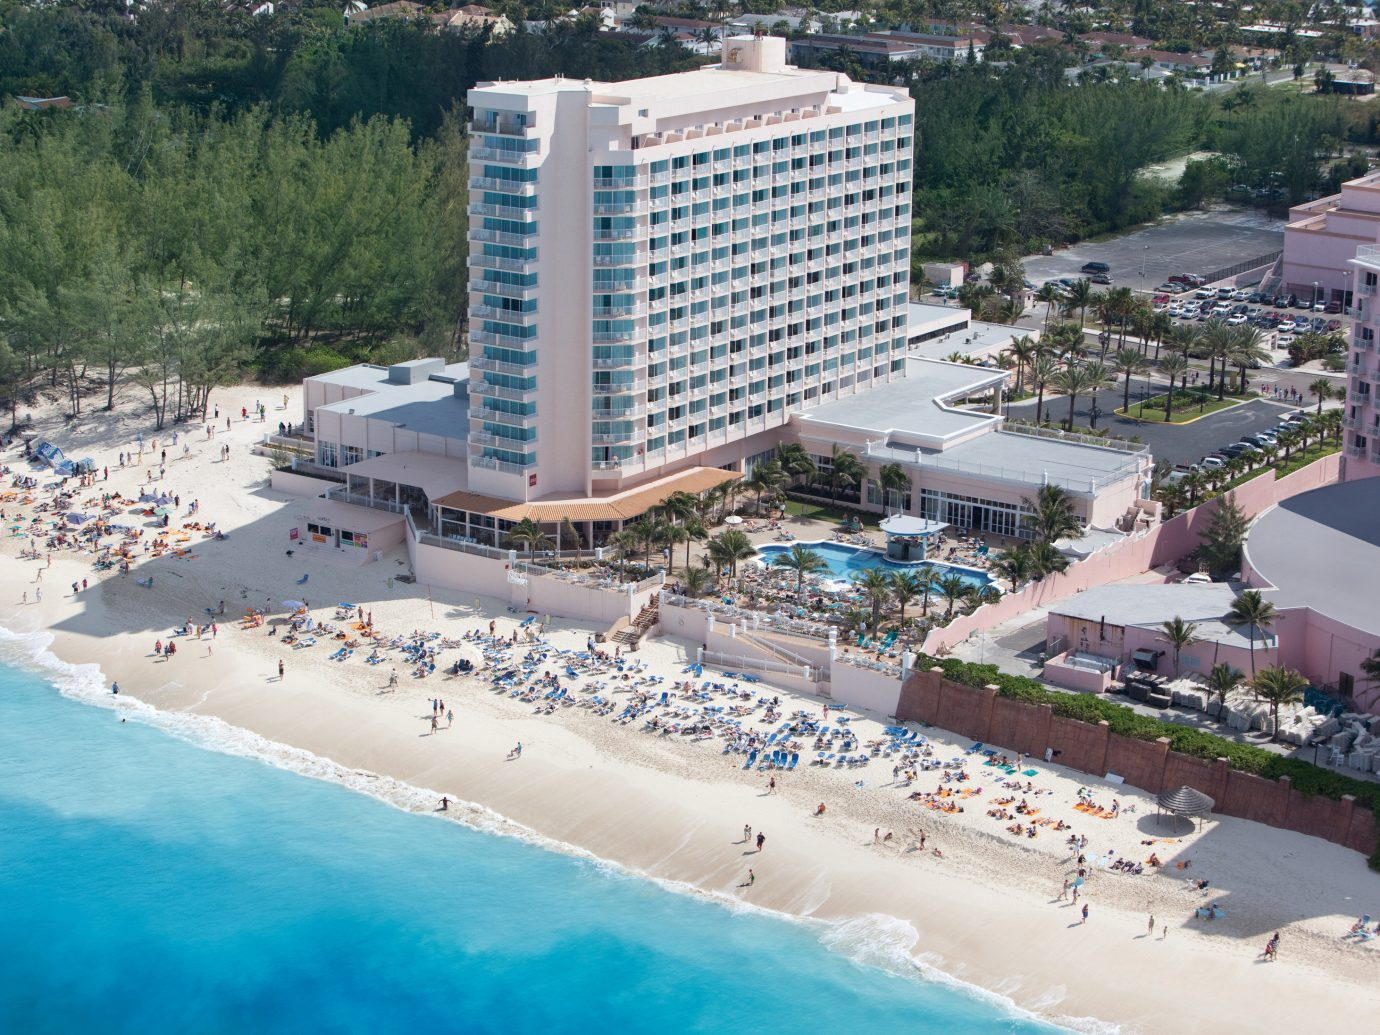 Aerial view of Hotel Riu Palace Paradise Island